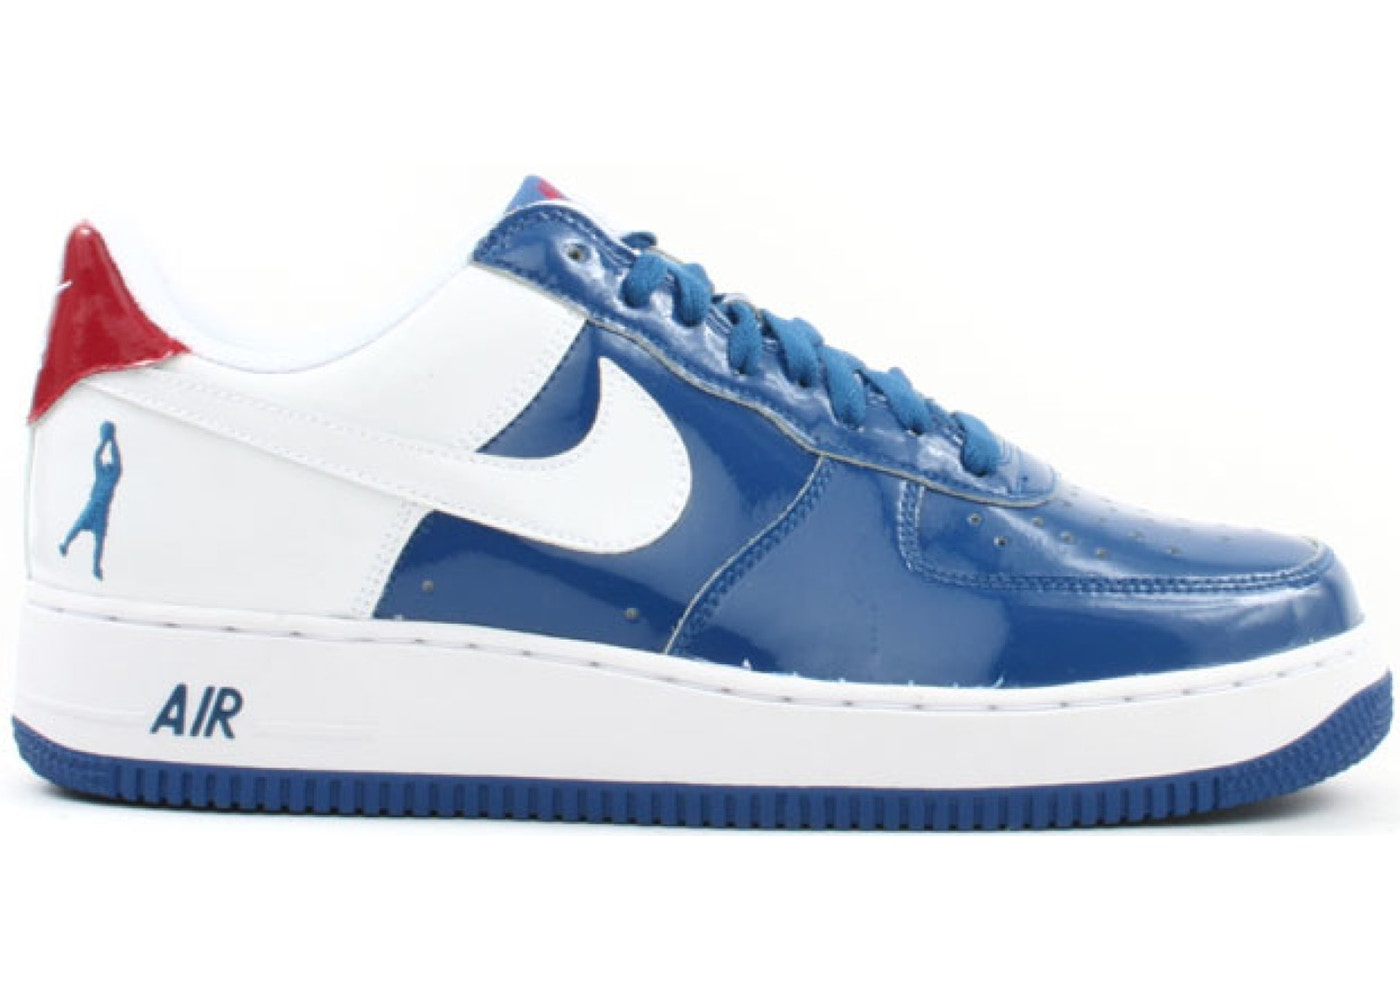 half off 4df38 43115 Air Force 1 Low Sheed Blue Jay - 306347-411